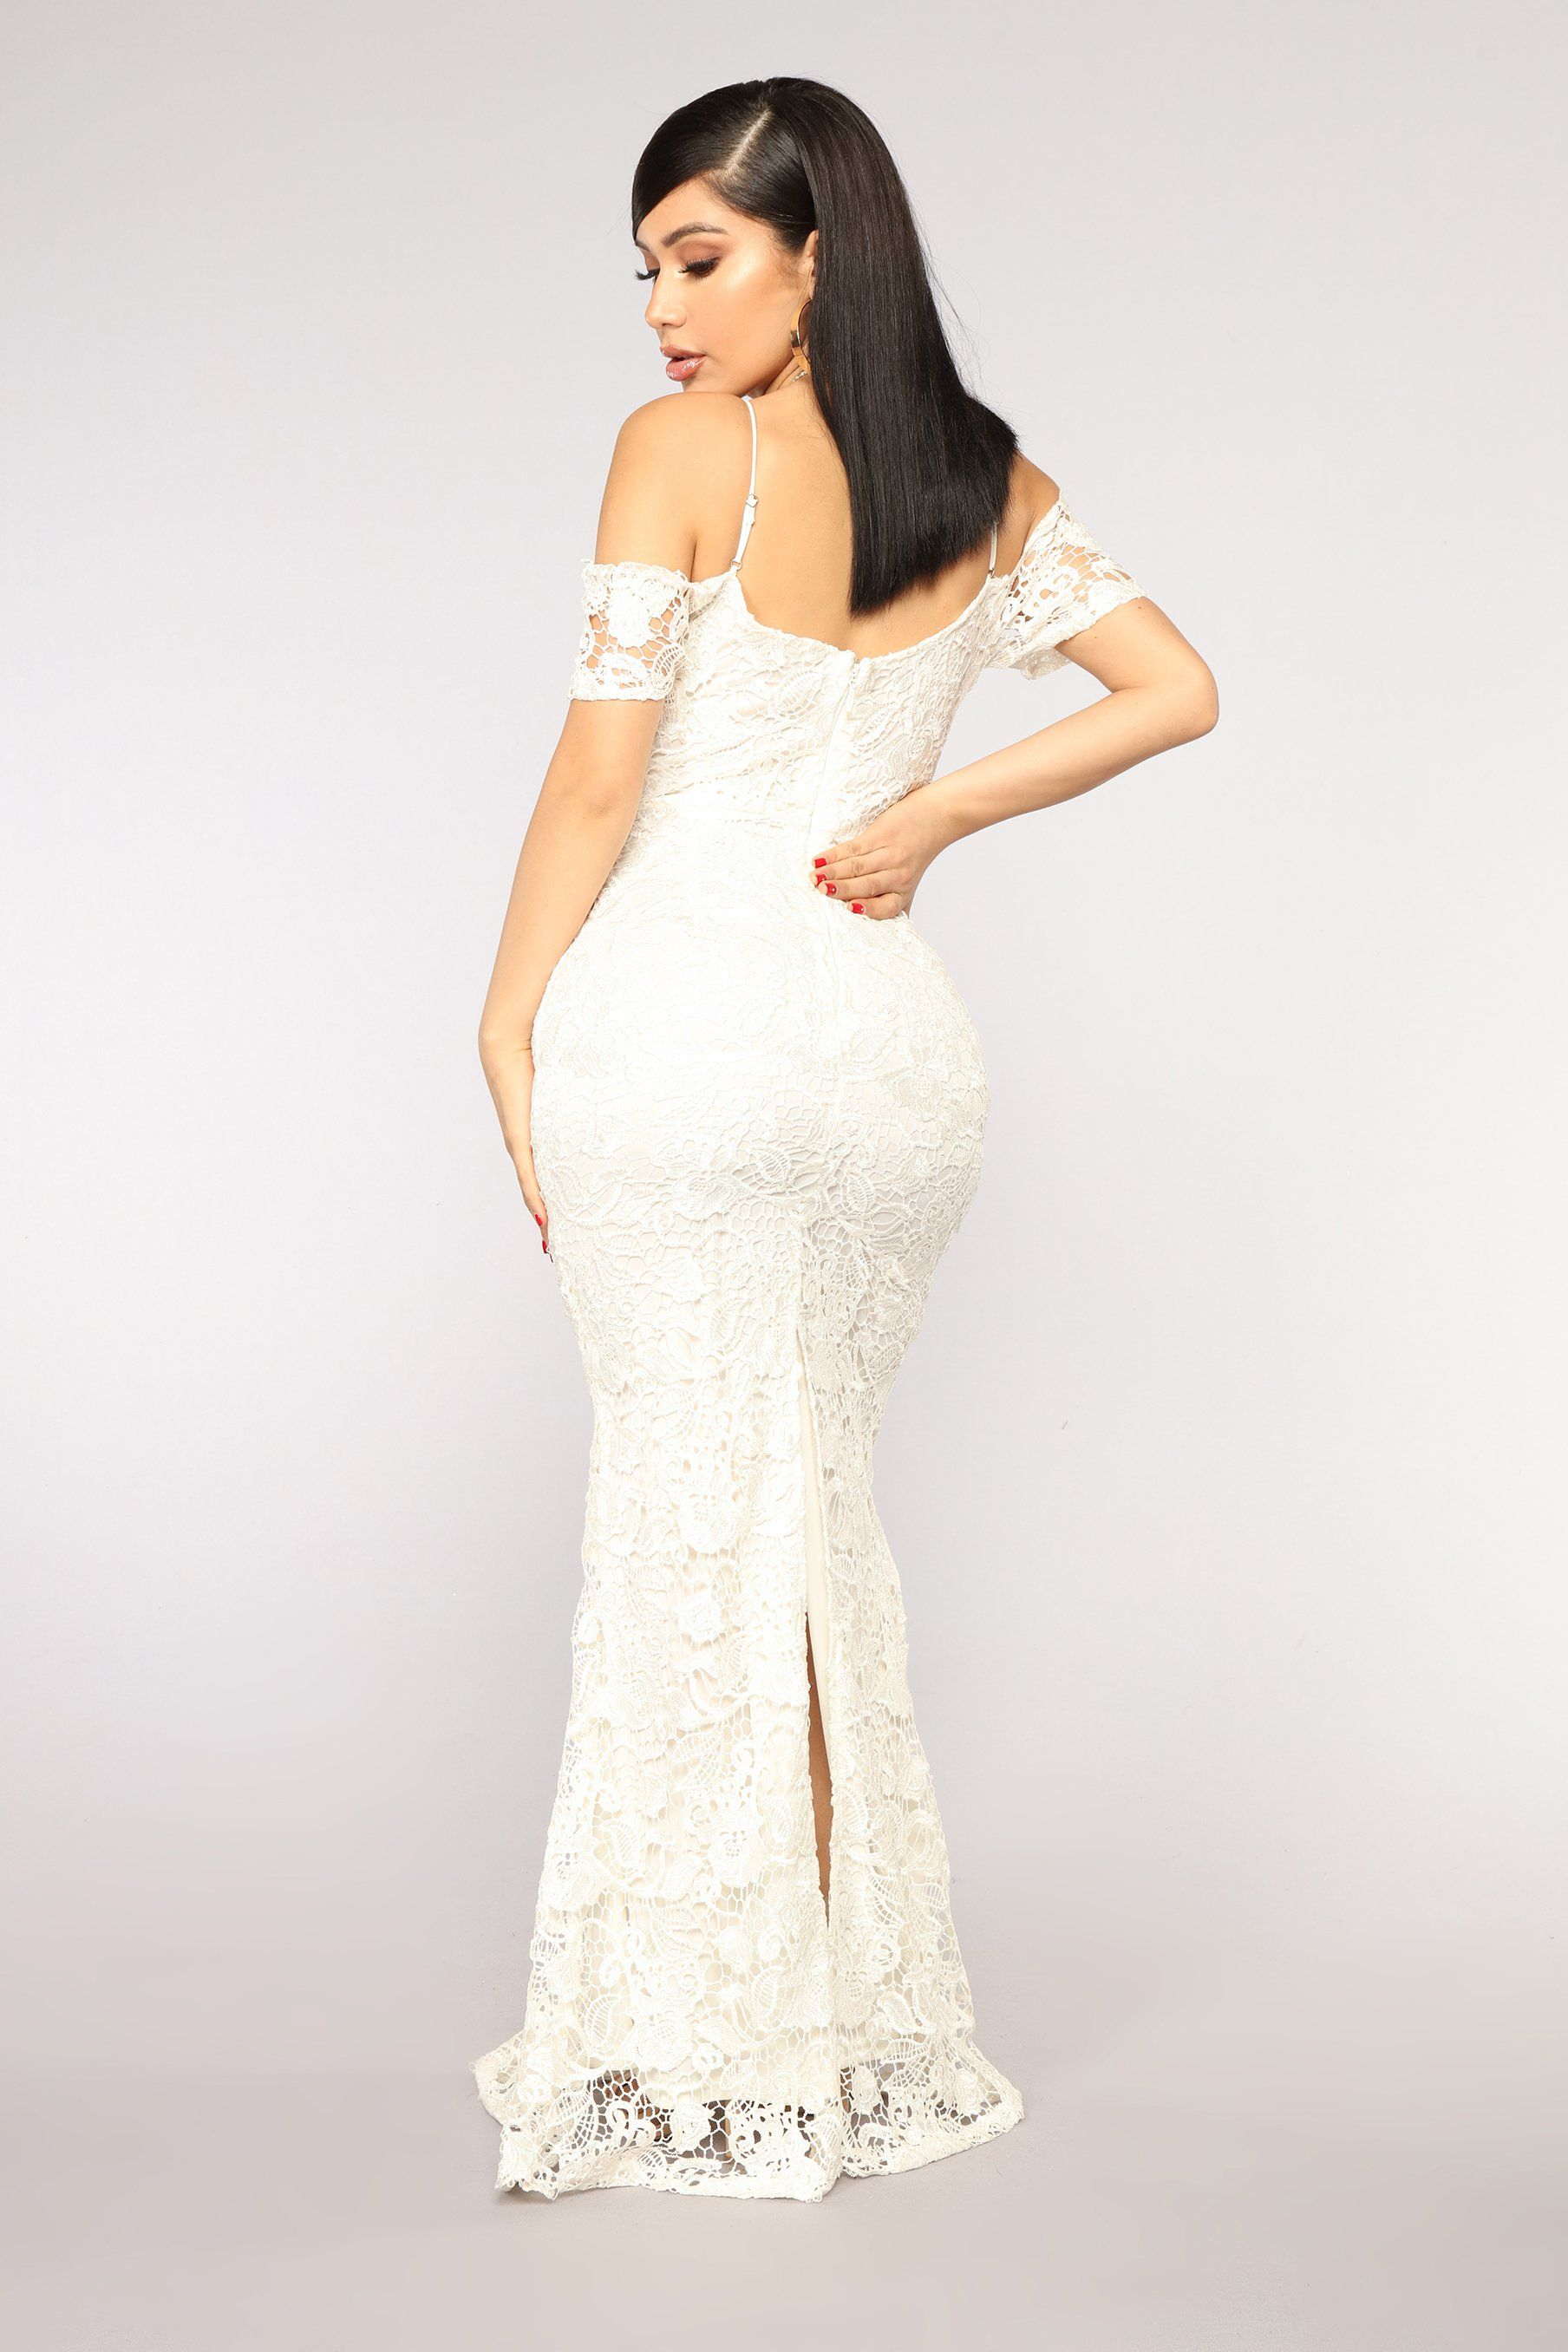 The Royal Debut Dress Off White Western Wedding Dresses Lace Debut Dresses Party Dress Classy